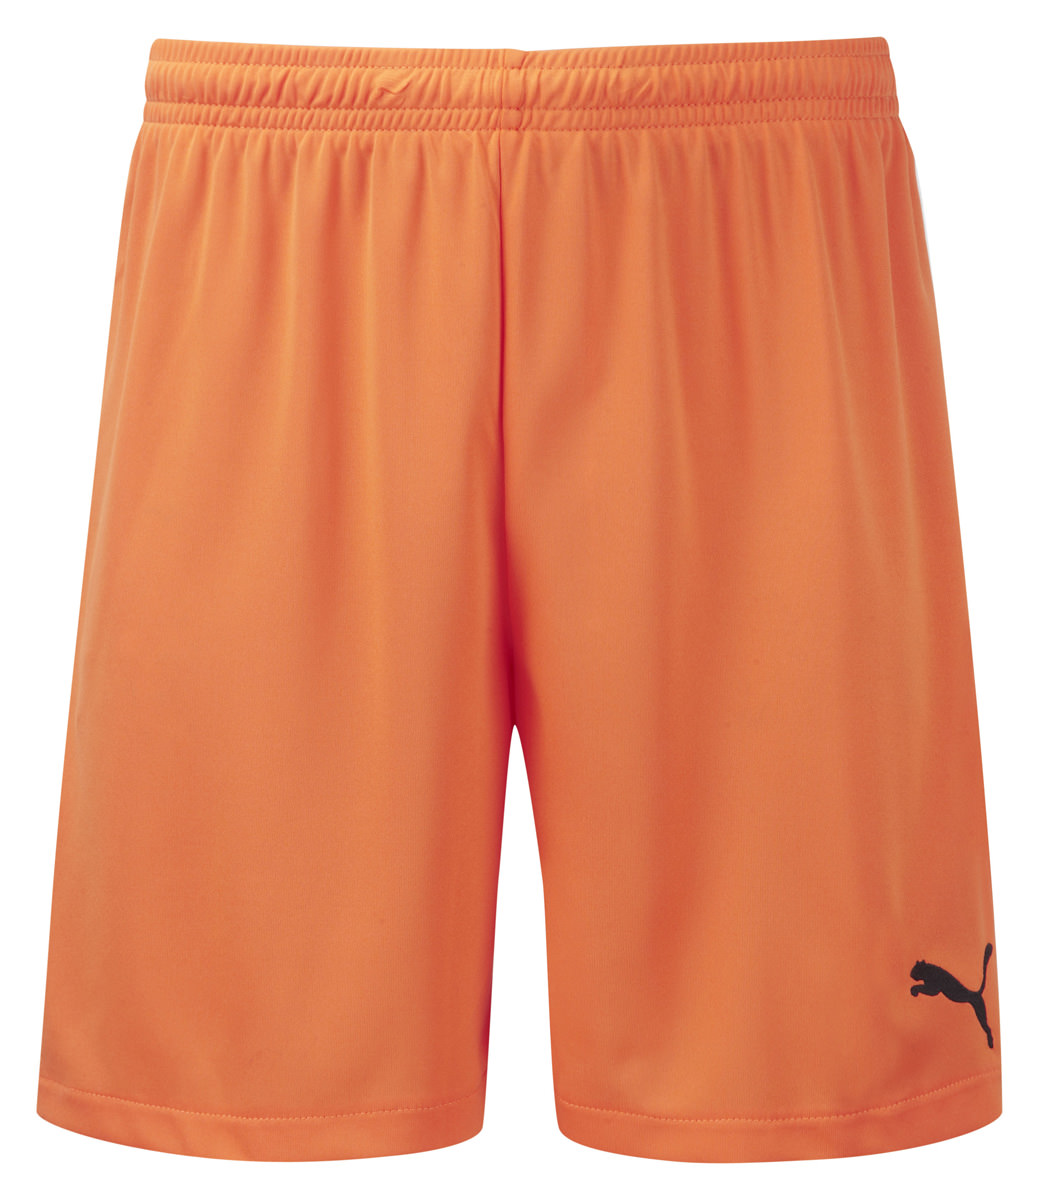 Puma SMU Velize Shorts - Orange